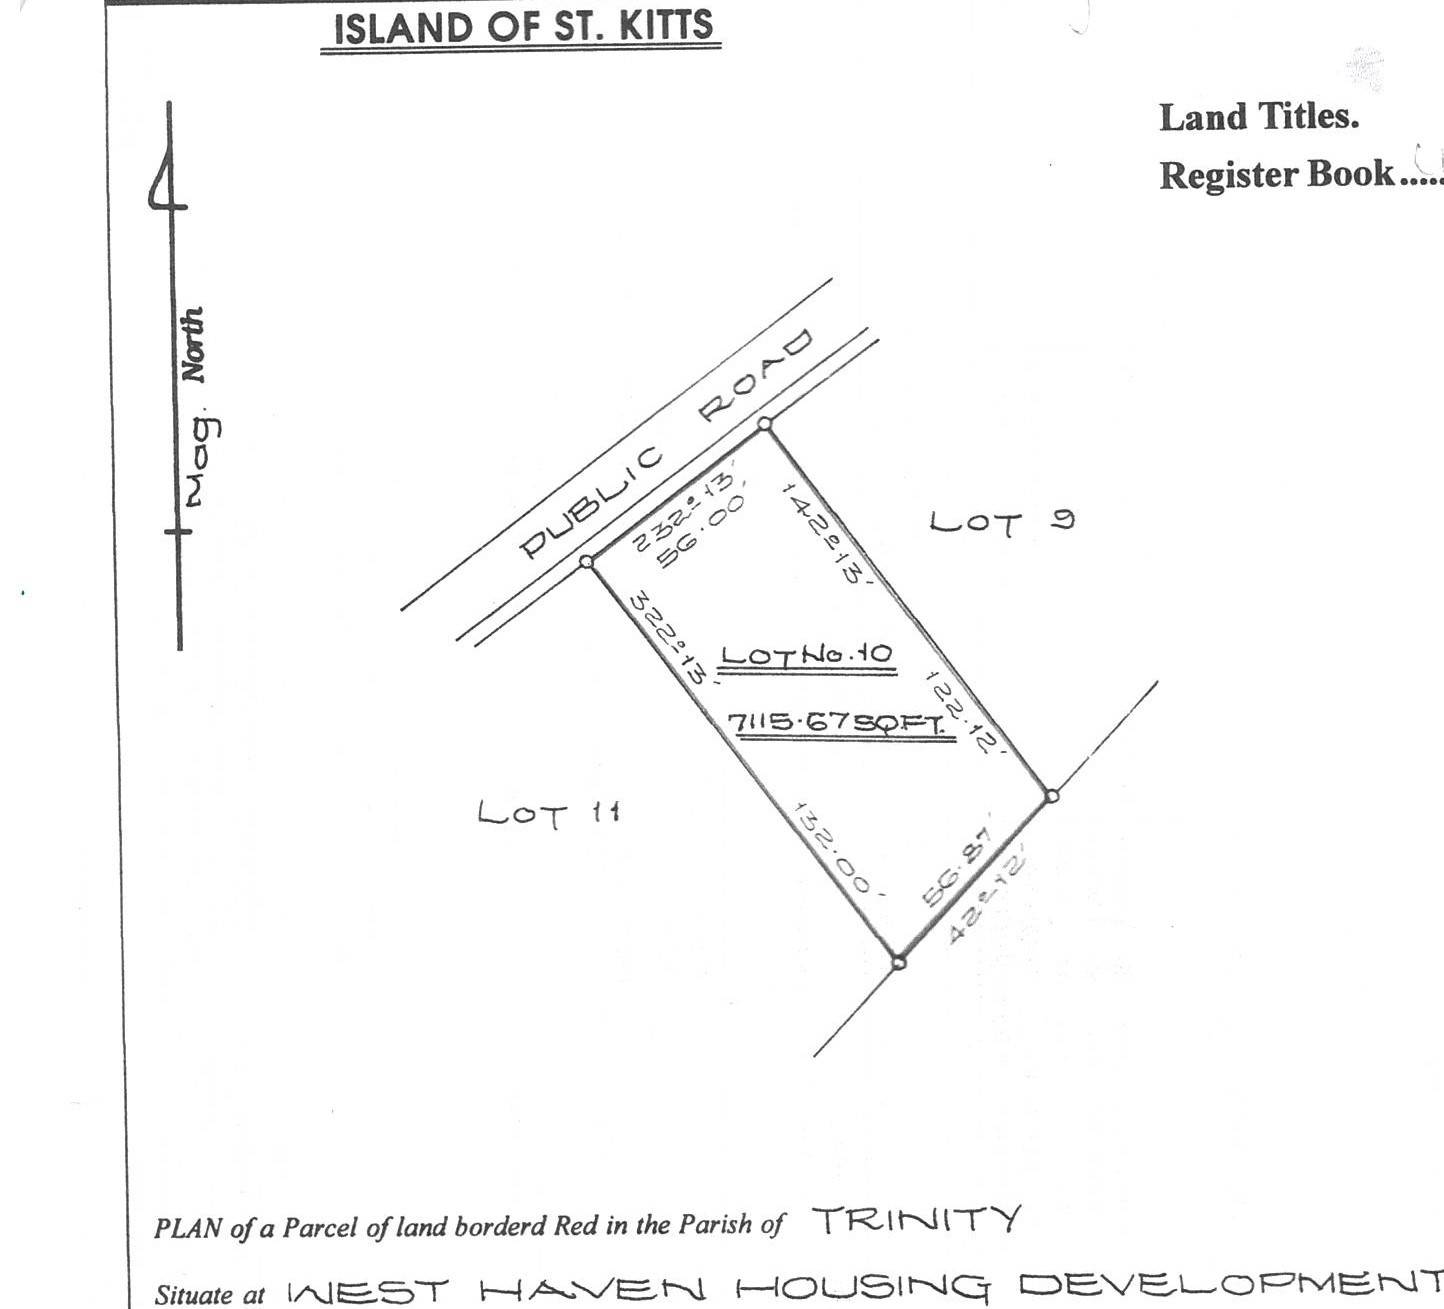 Land For Sale At West Haven Housing Development, St Kitts